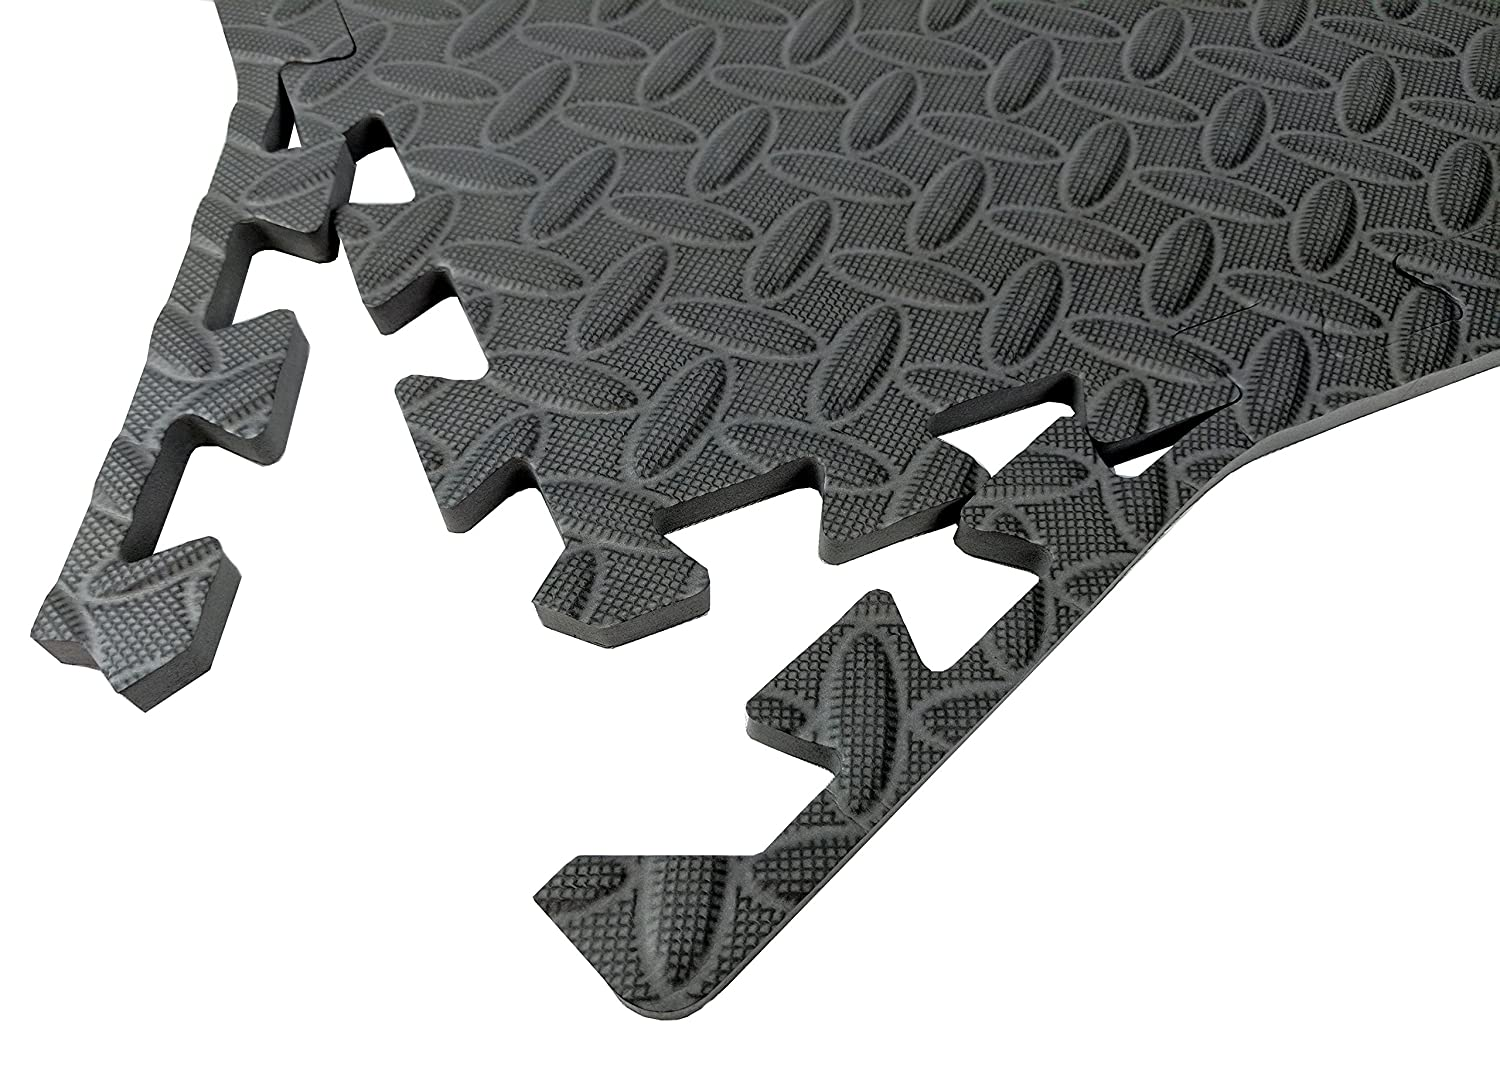 Wacces 12 x 12 inch Multi-Purpose Puzzle EVA Floor Interlocking Foam Exercise Mat Tiles